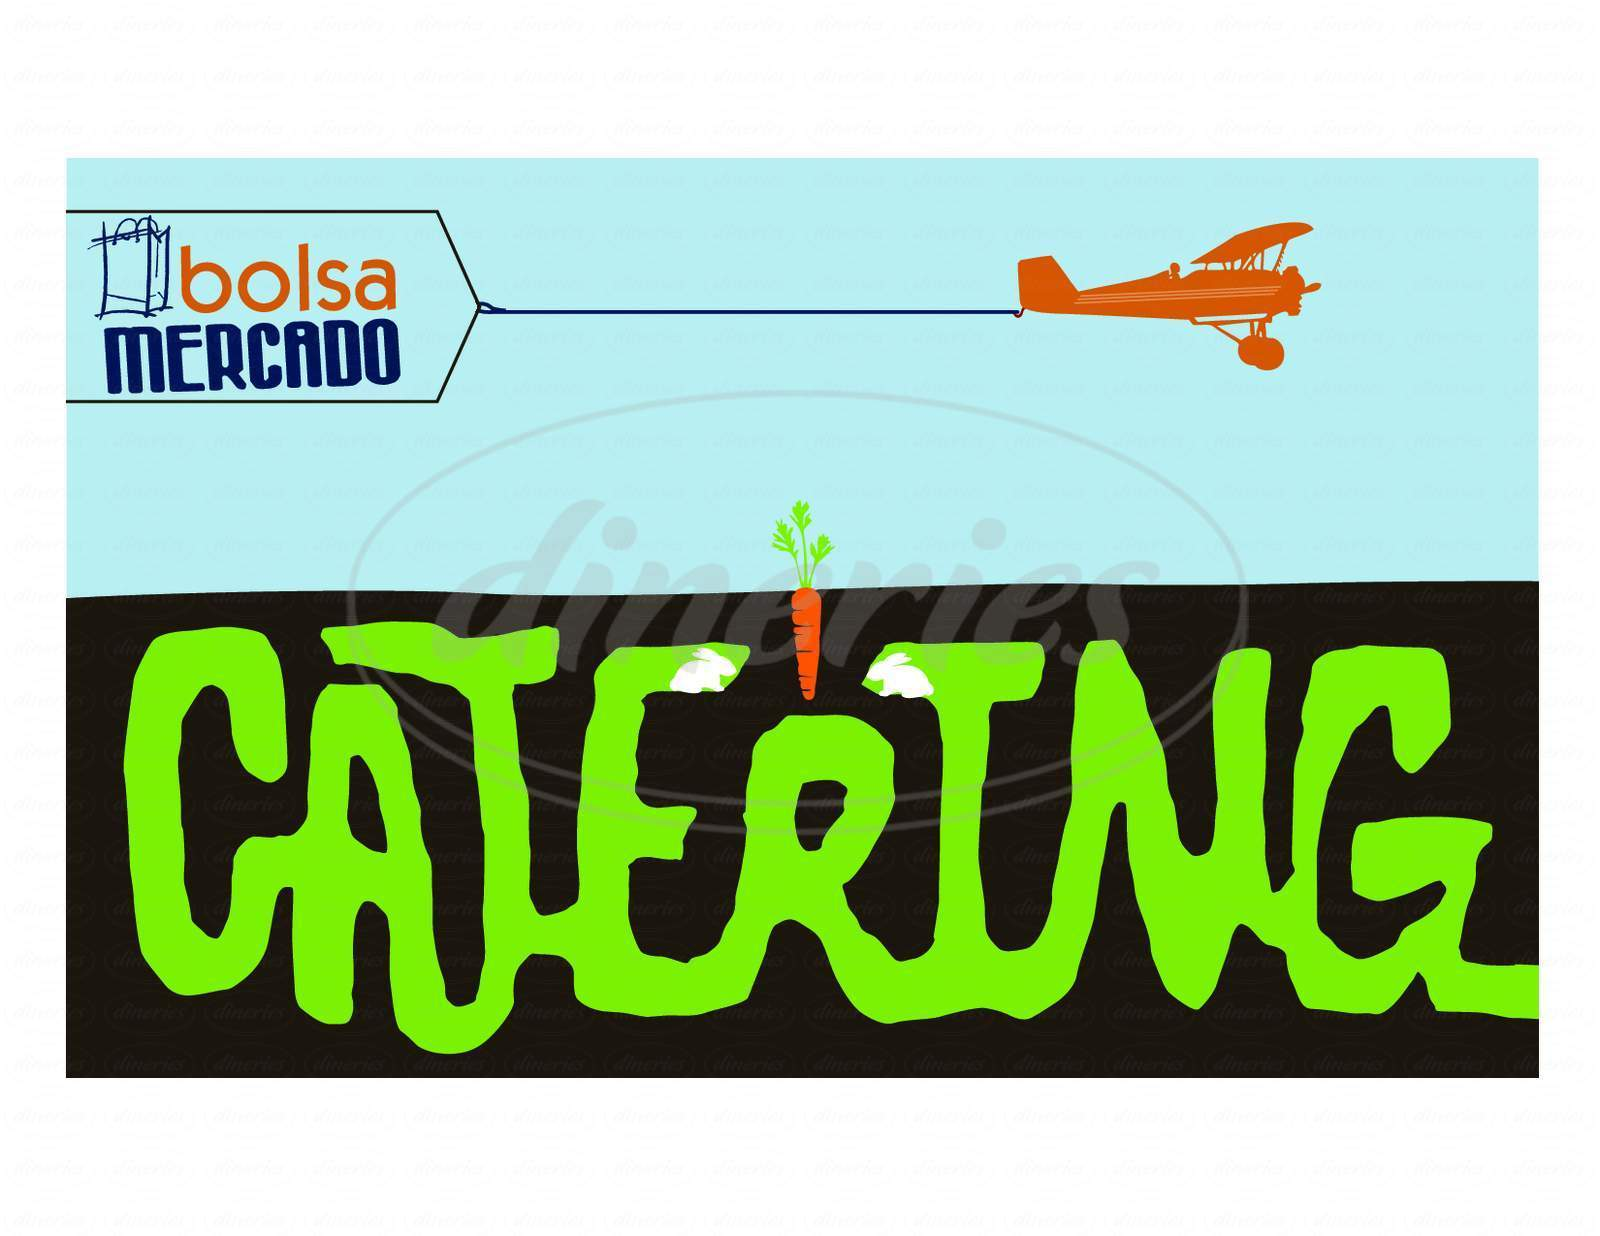 menu for Bolsa Mercado